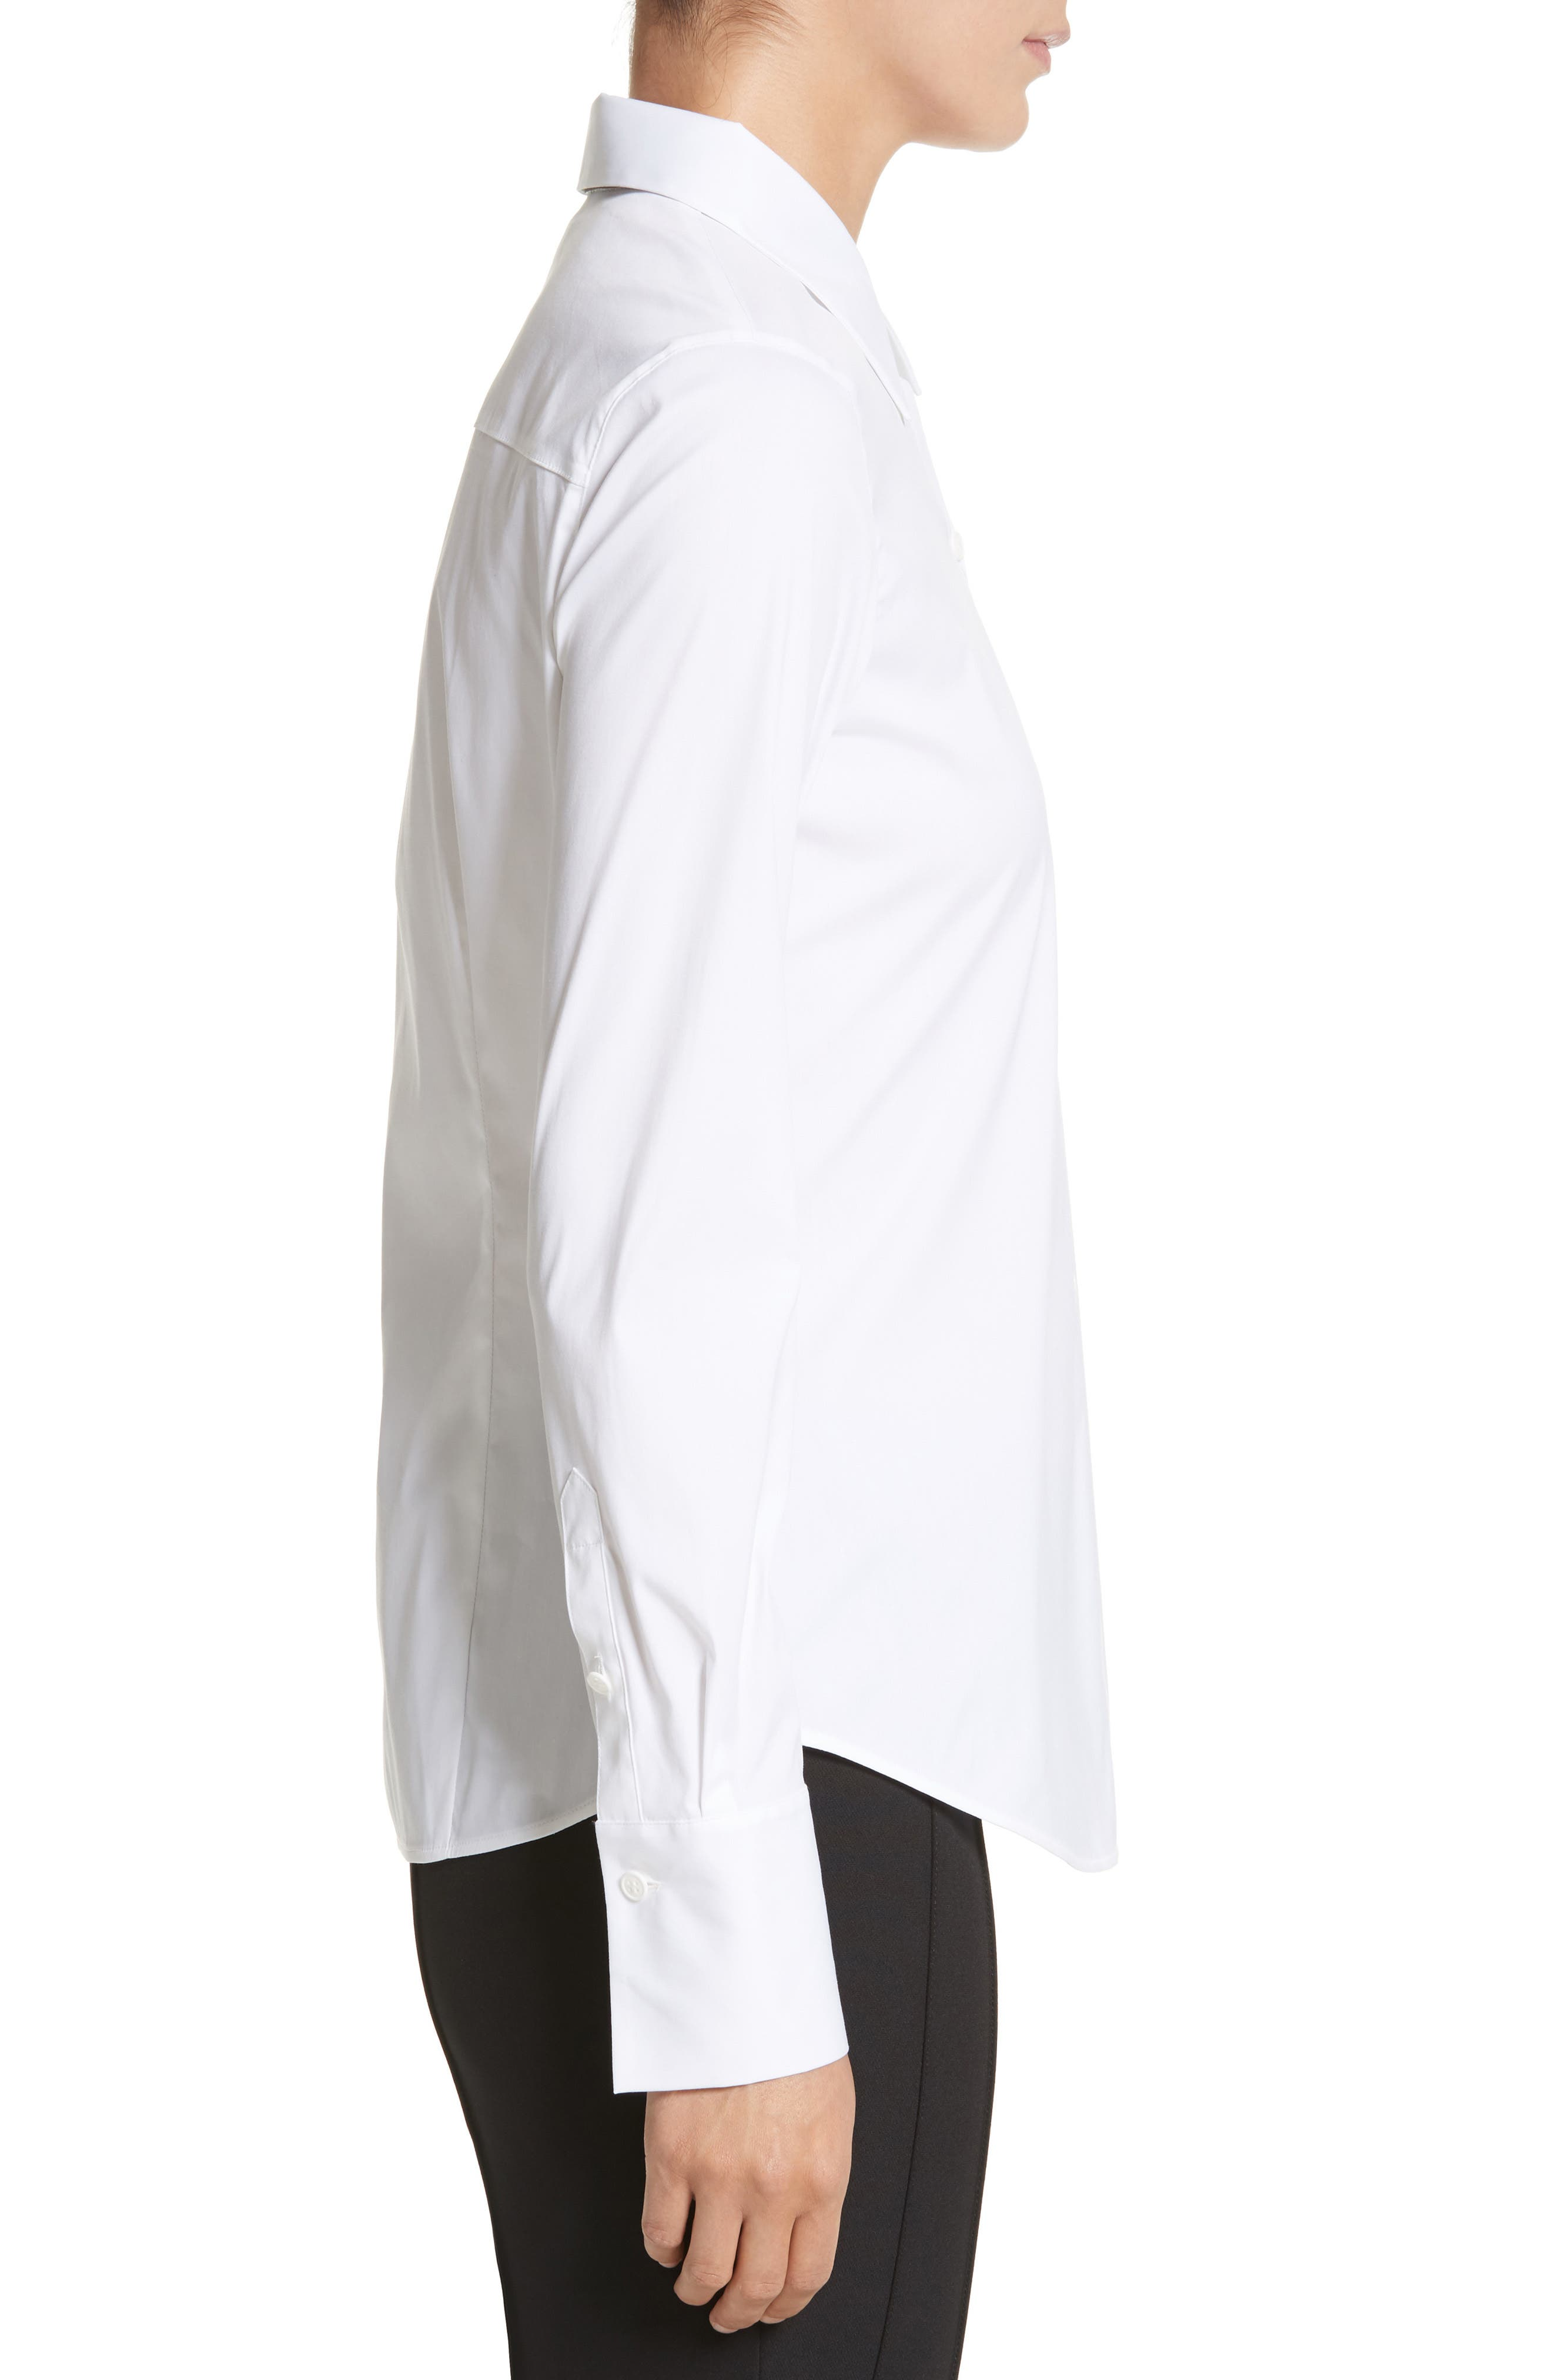 LAFAYETTE 148 NEW YORK,                             Linley Stretch Cotton Blouse,                             Alternate thumbnail 3, color,                             WHITE